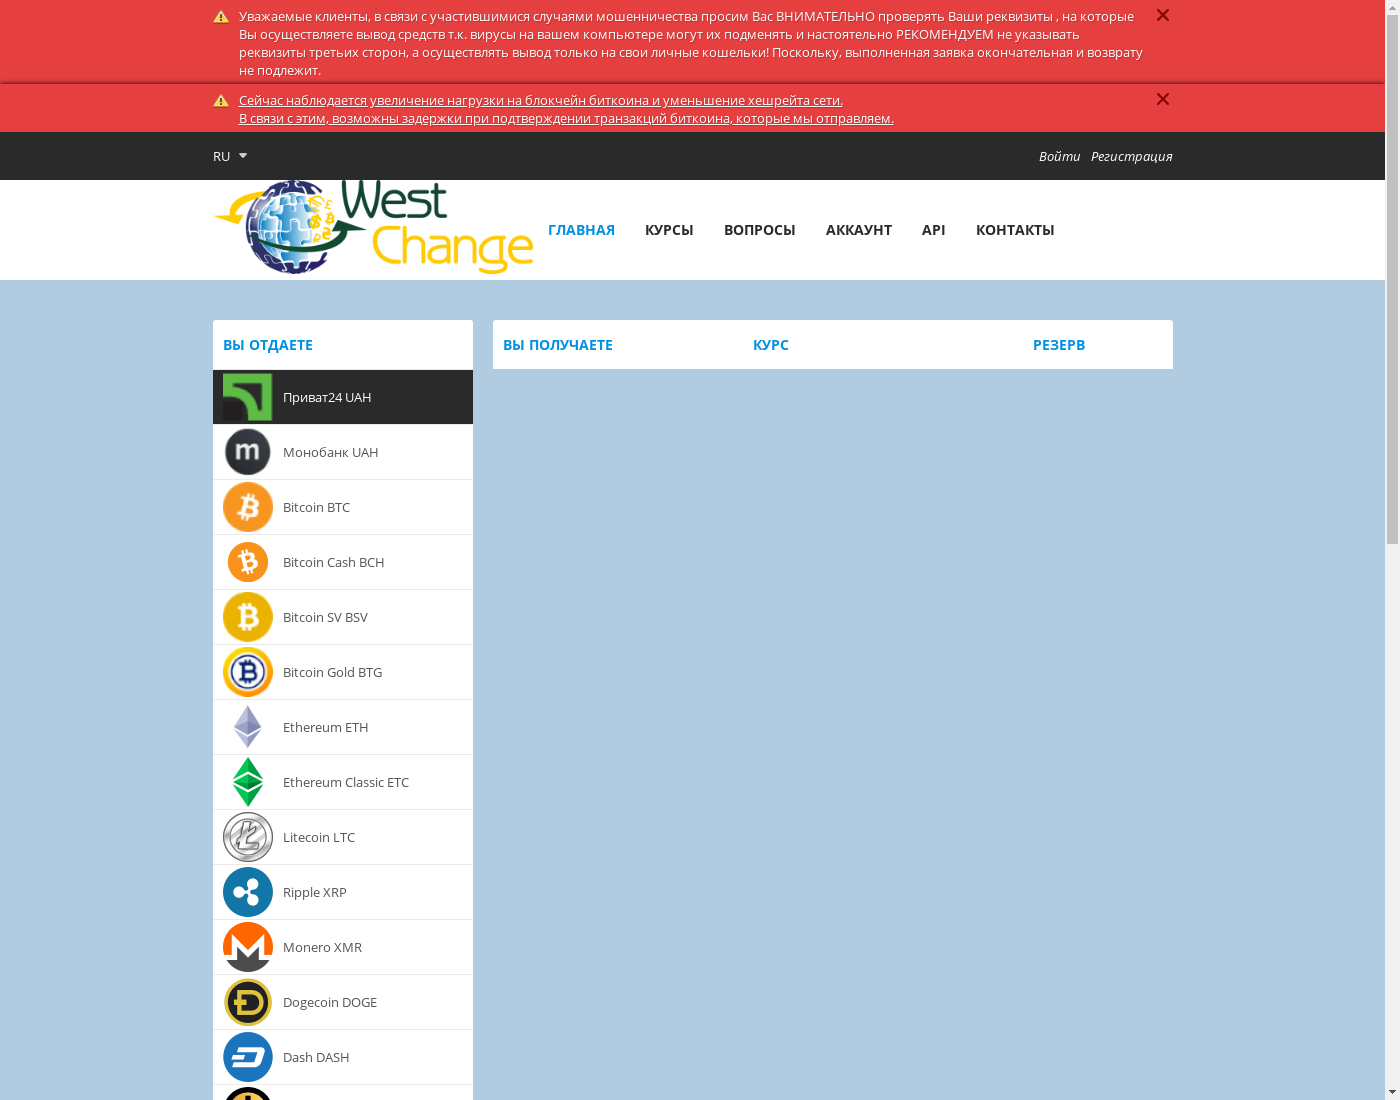 WestChange user interface: the home page in English